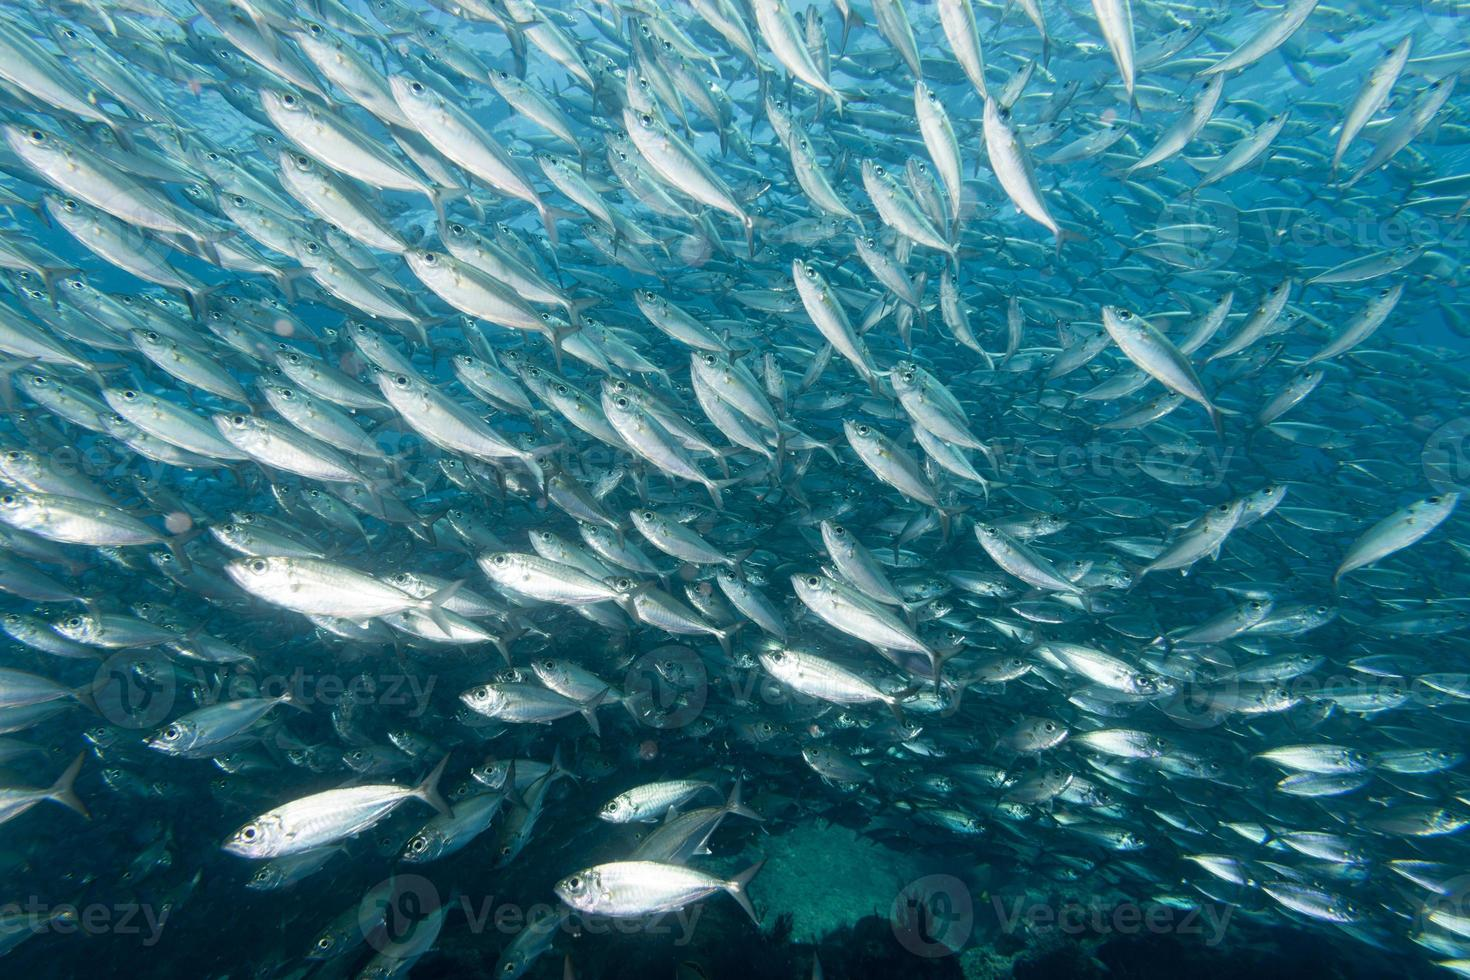 Inside a school of fish underwater photo